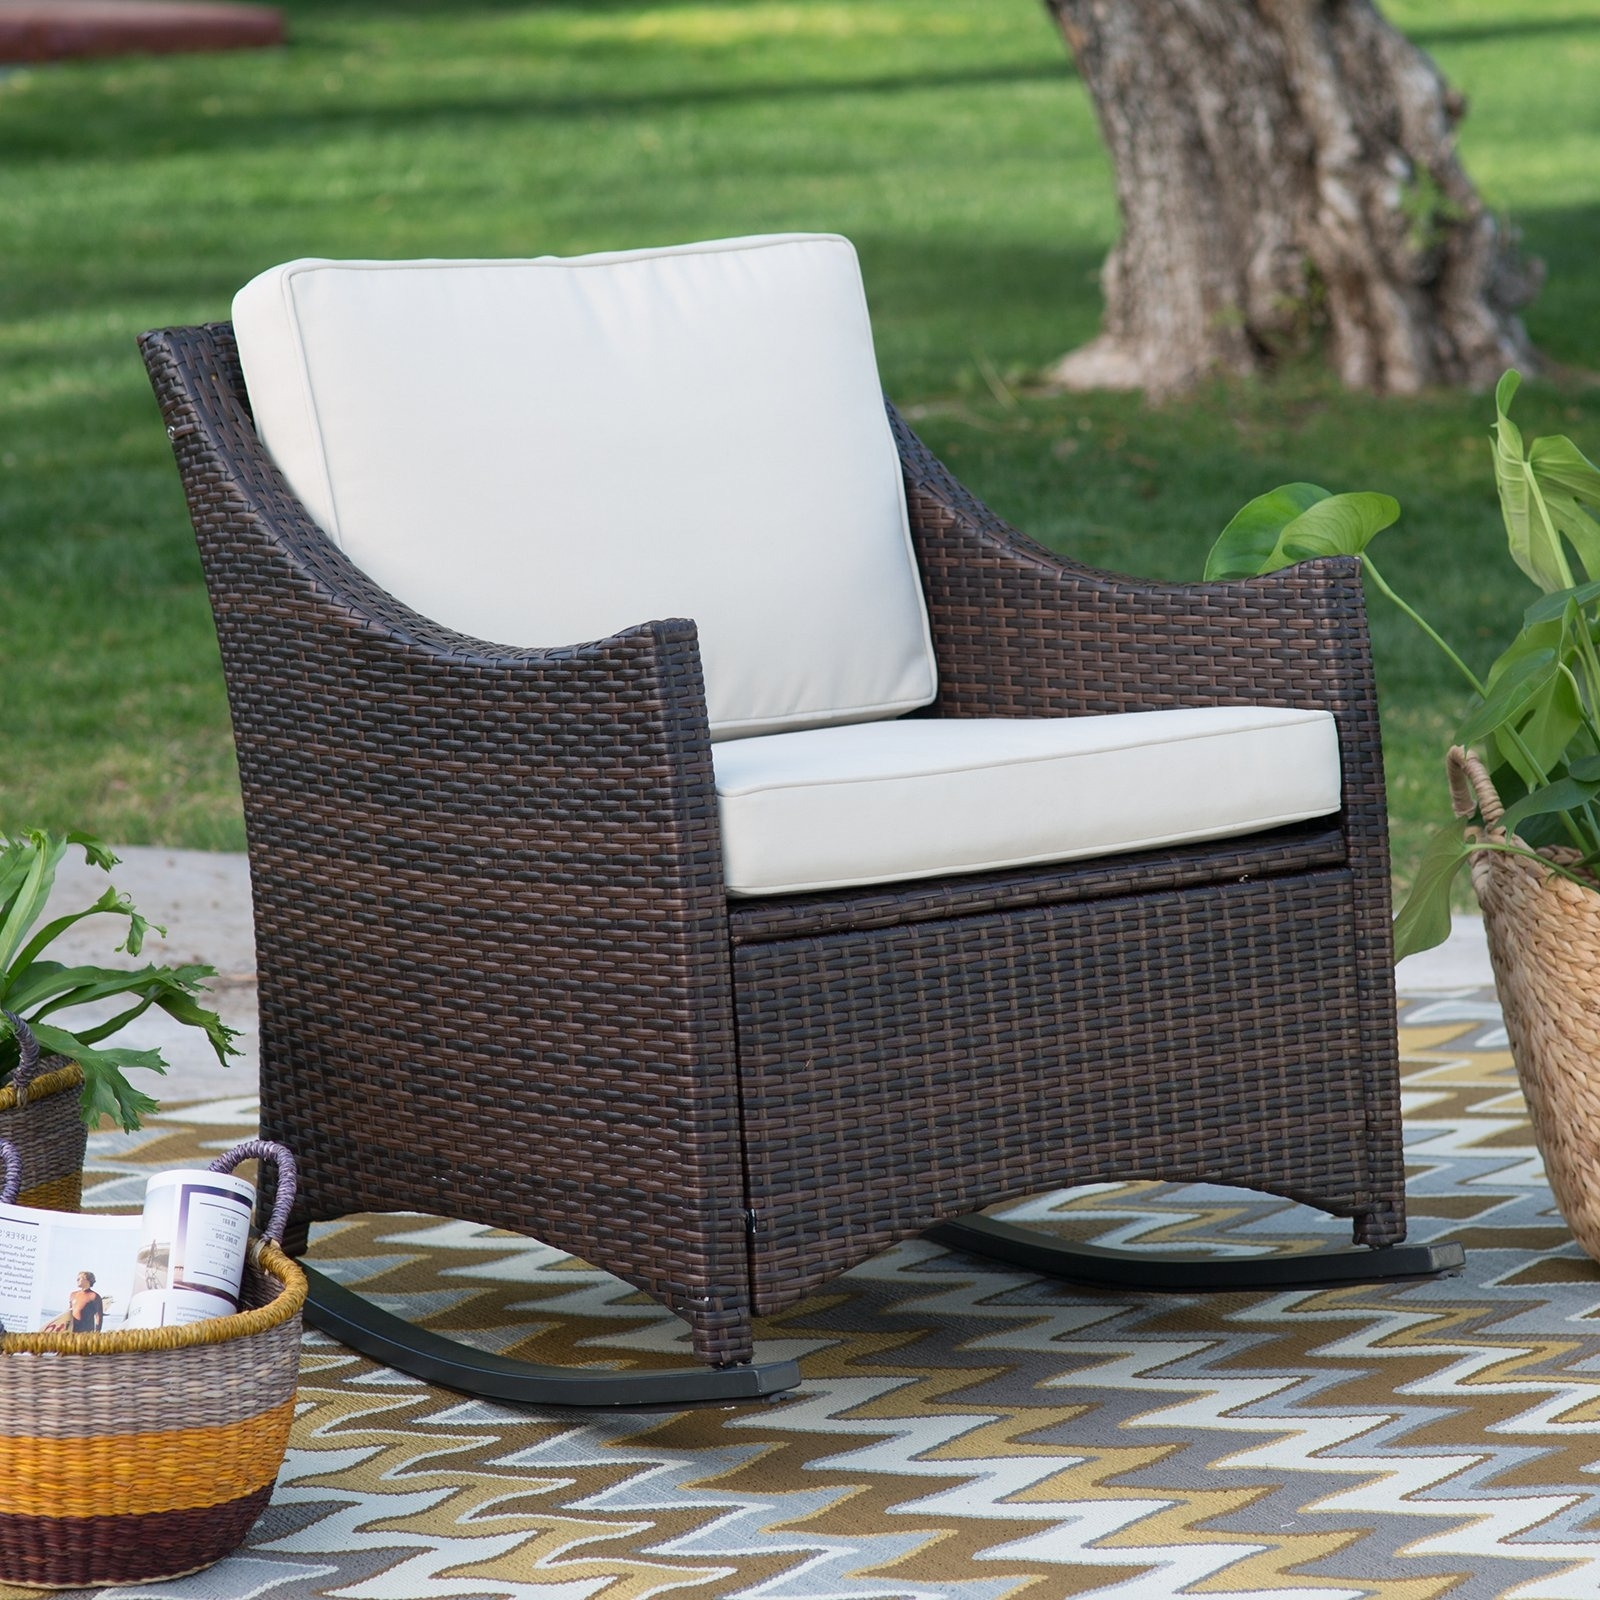 Most Current Outdoor Wicker Rocking Chairs Intended For Coral Coast Losani All Weather Wicker Outdoor Rocking Chair Look (View 5 of 15)